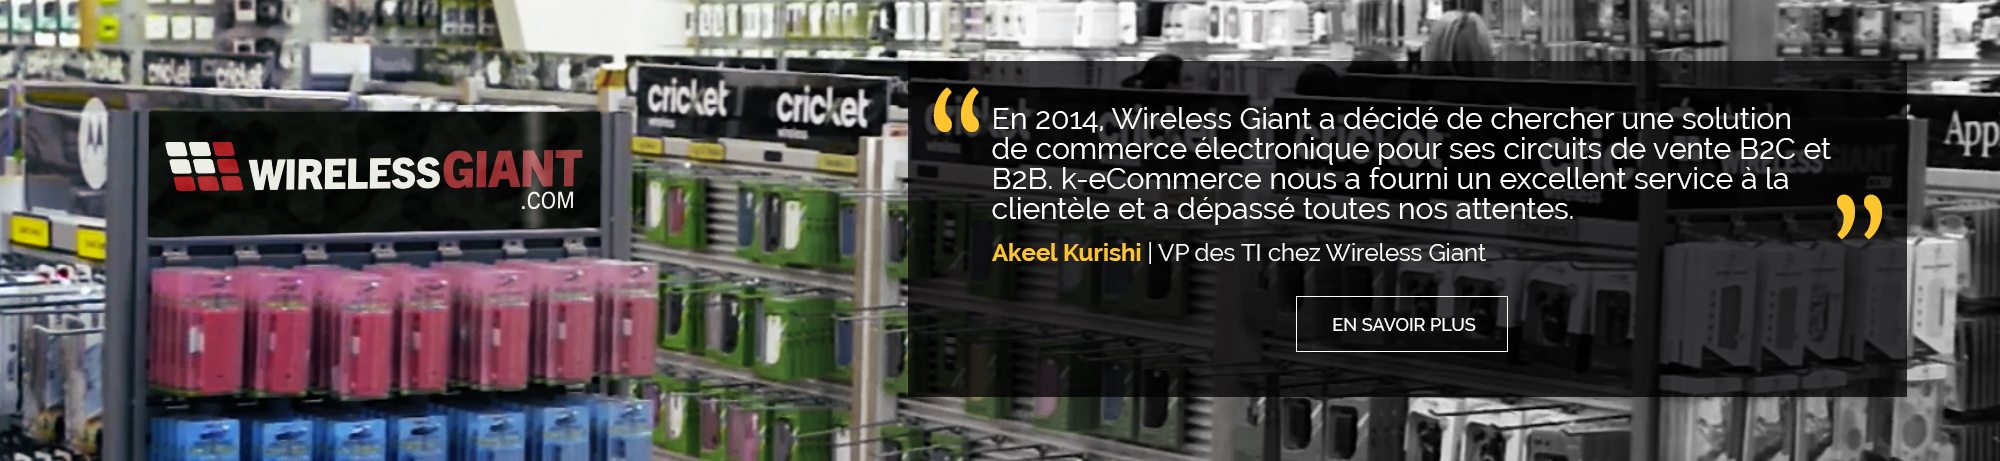 wireless_giant_case_study_banner_fr-1